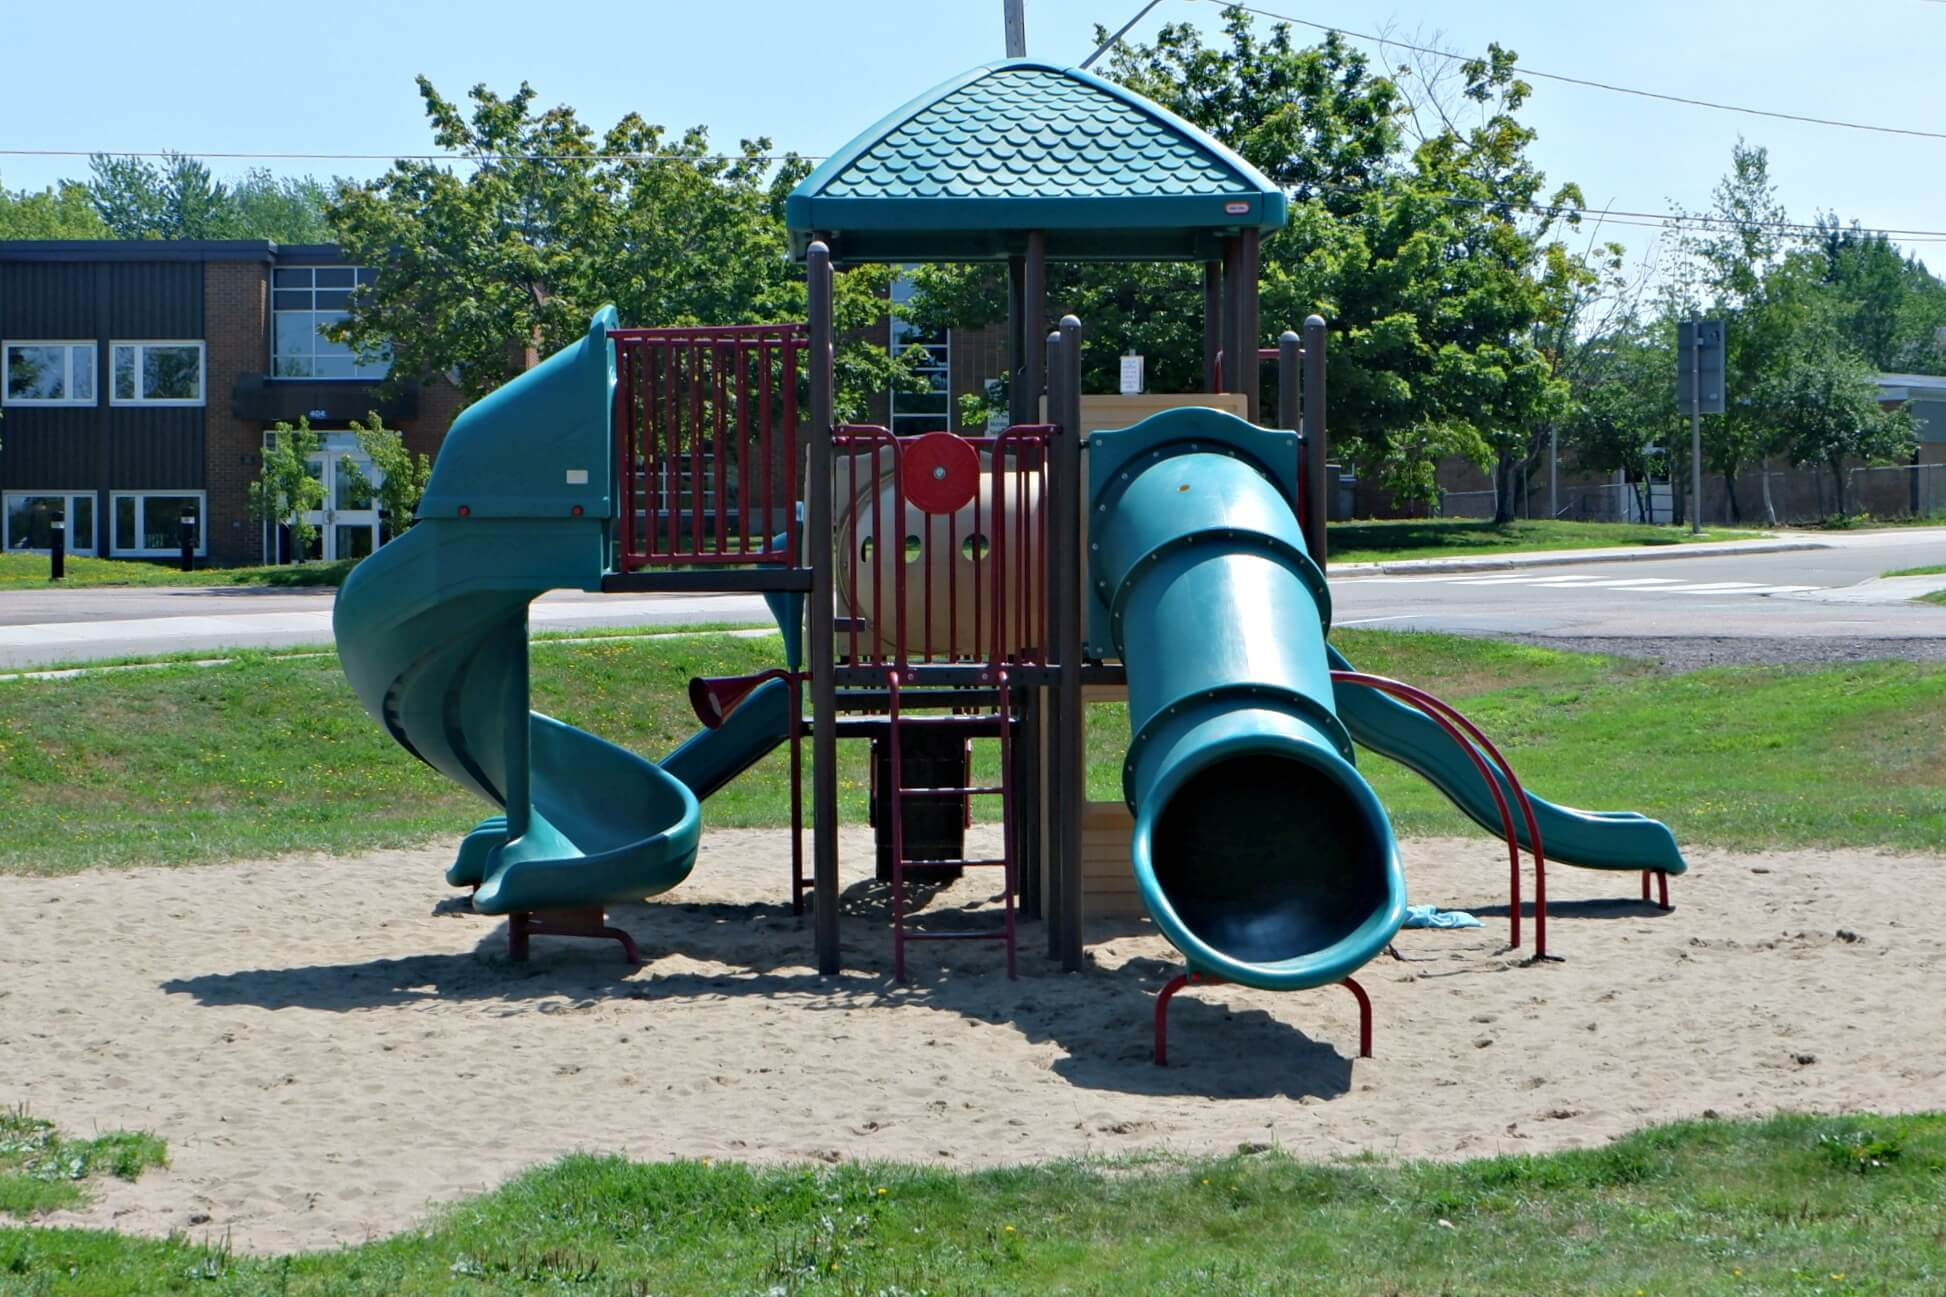 riverview patricia park tot lot accessible playground pickle planet sand box structure